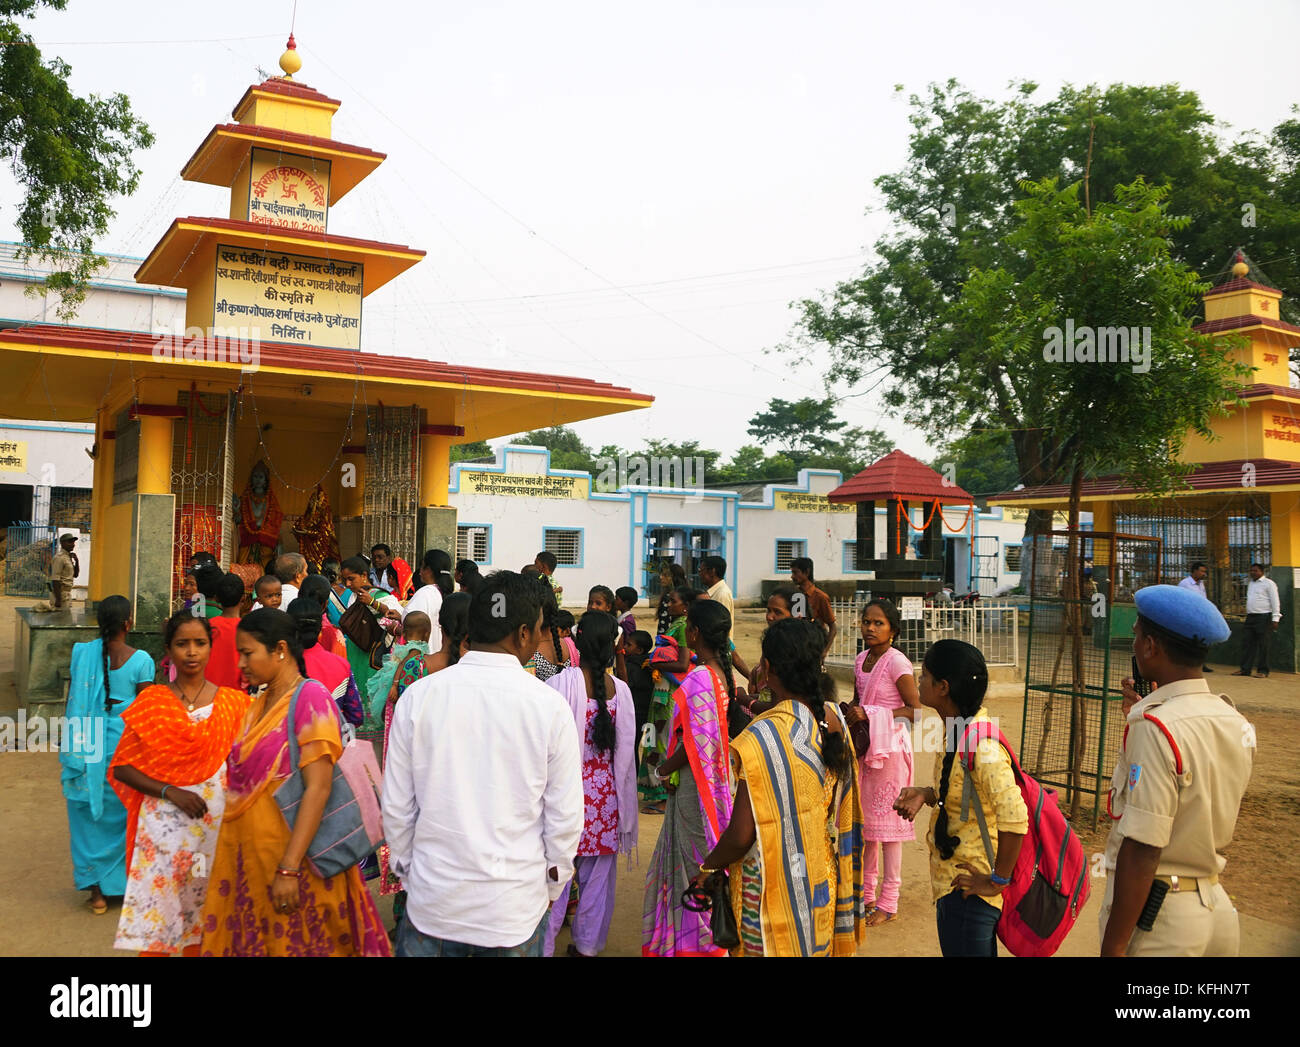 Chaibasa, Jharkhand, India, 29th October 2017: Chaibasa Gaushala celebrated its 117th historic annual Fair on 28th - Stock Image